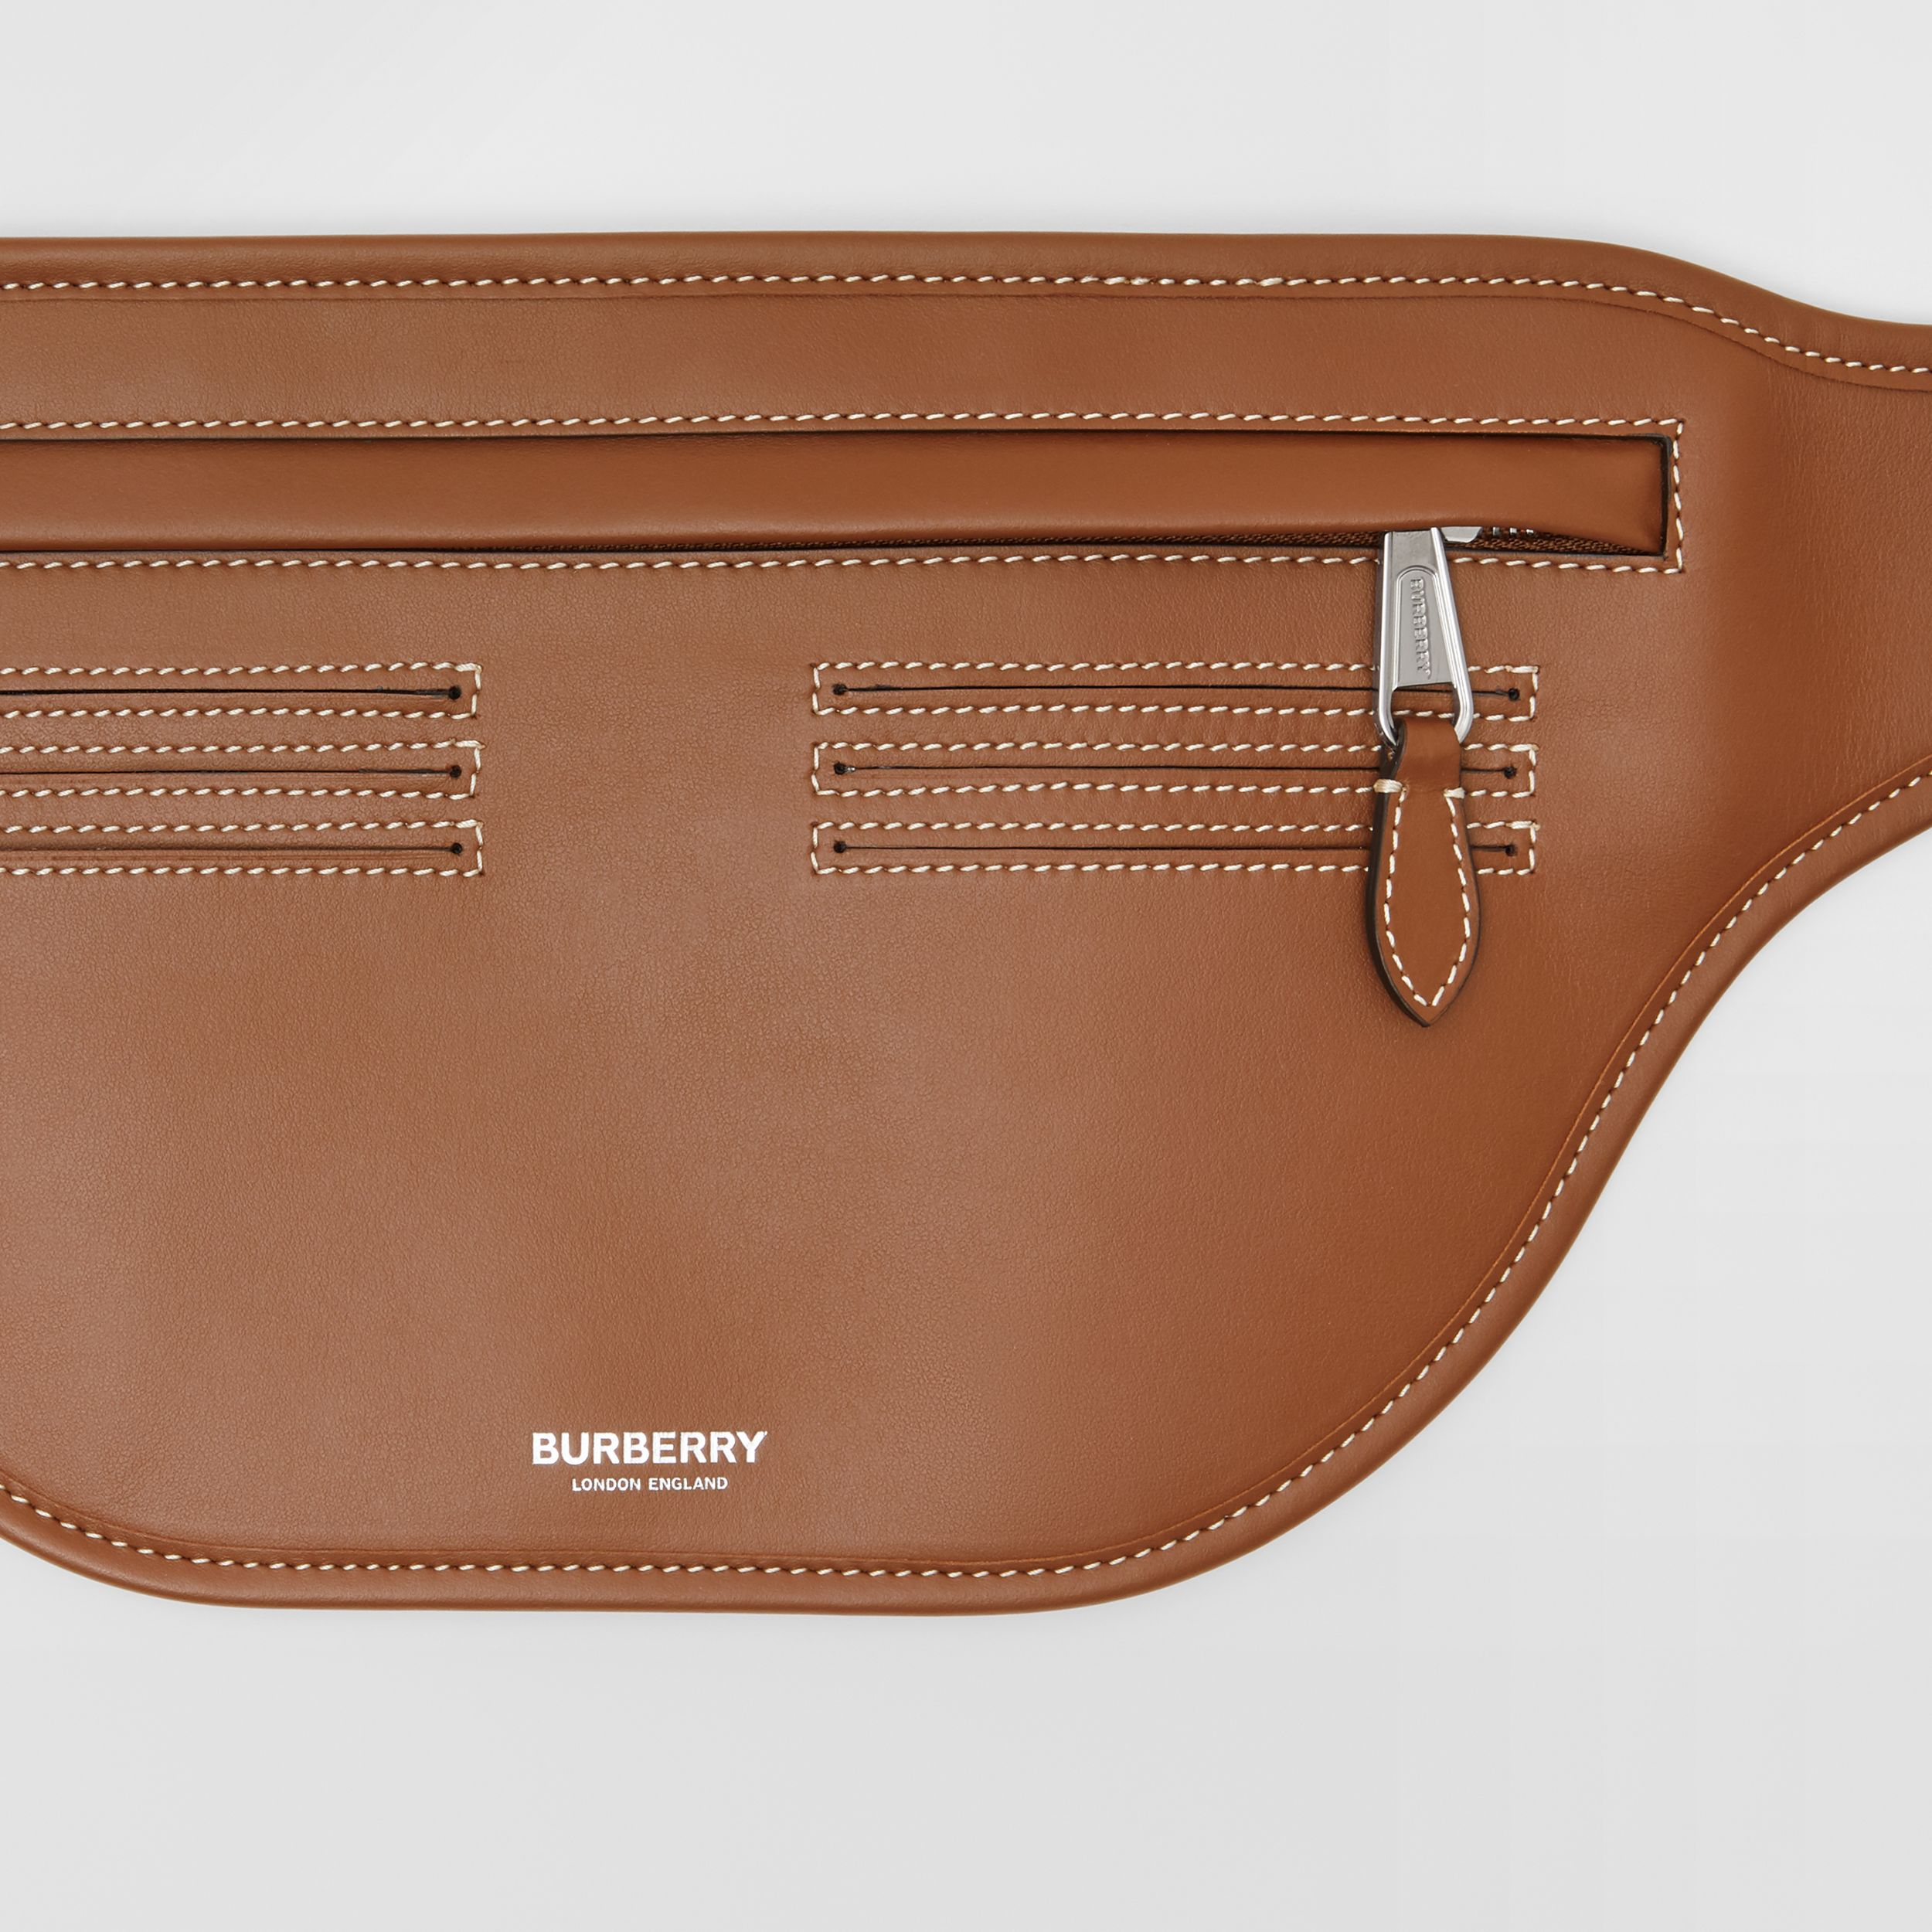 Topstitched Leather Brummell Bum Bag in Tan | Burberry - 2